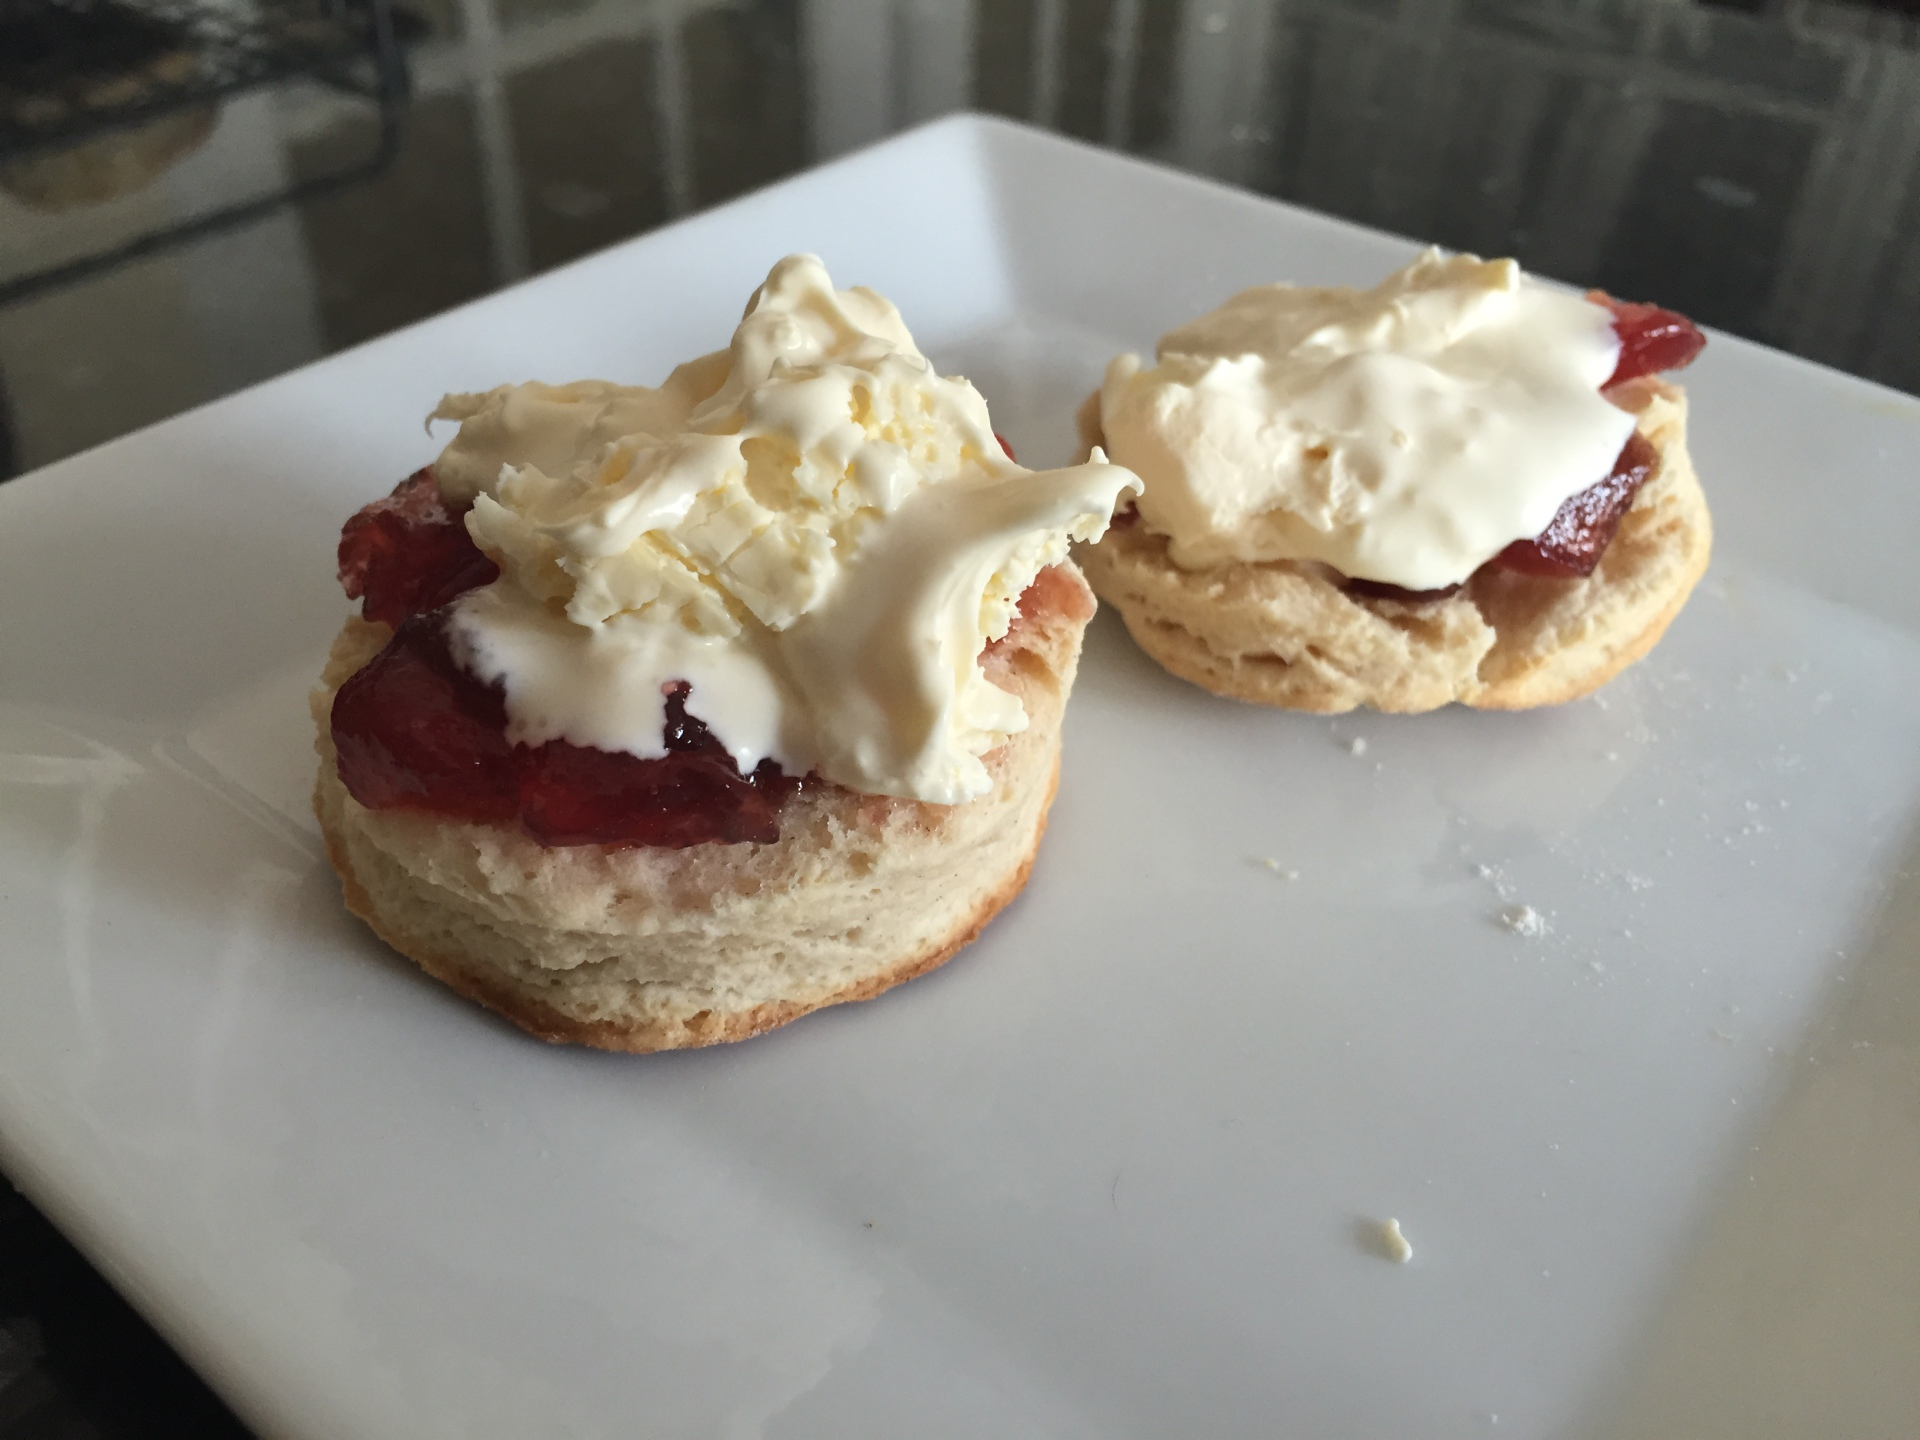 Homemade scones, strawberry jam and clotted cream